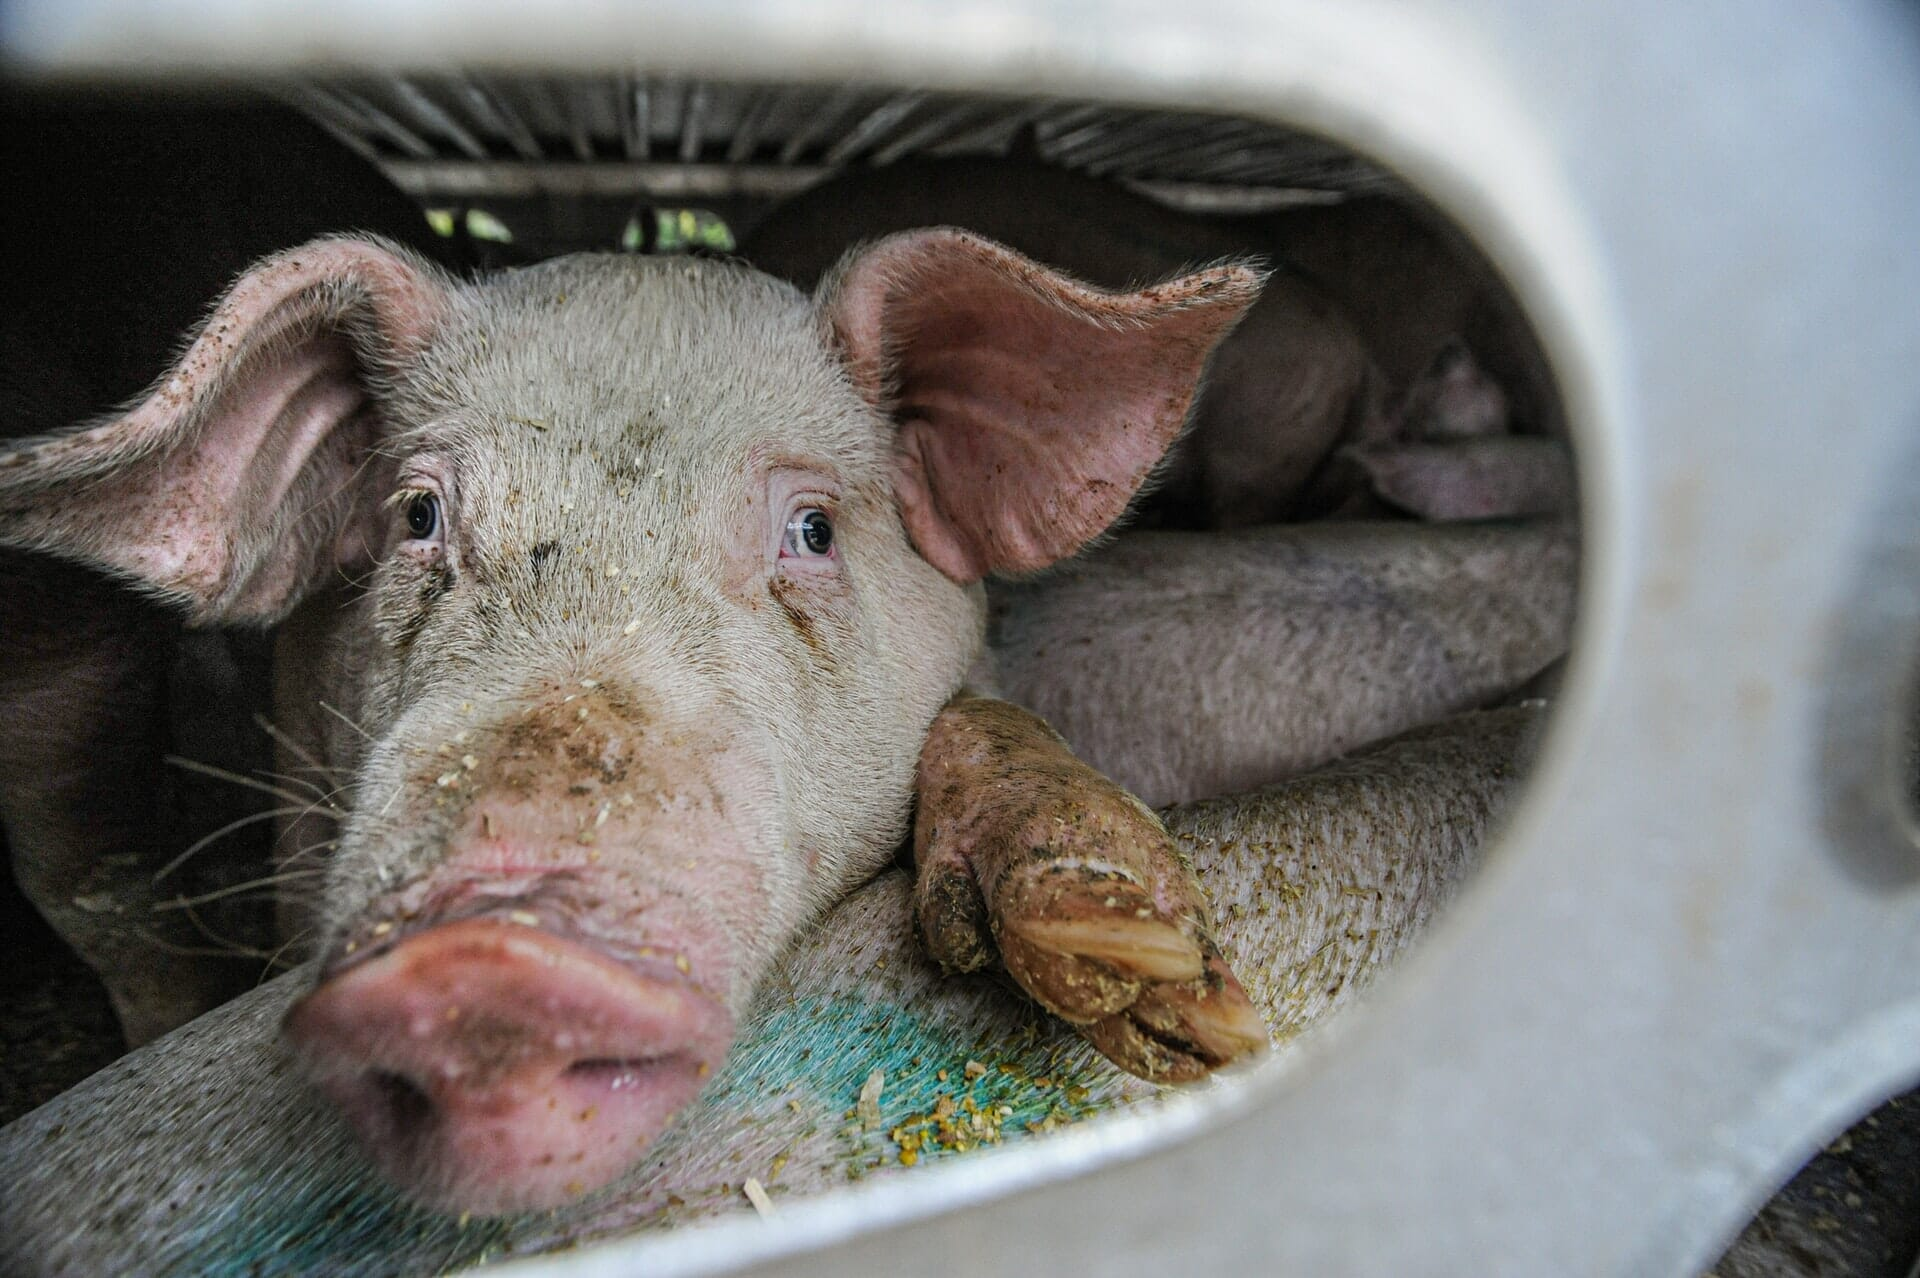 A sad pig in a crowded livestock carrier